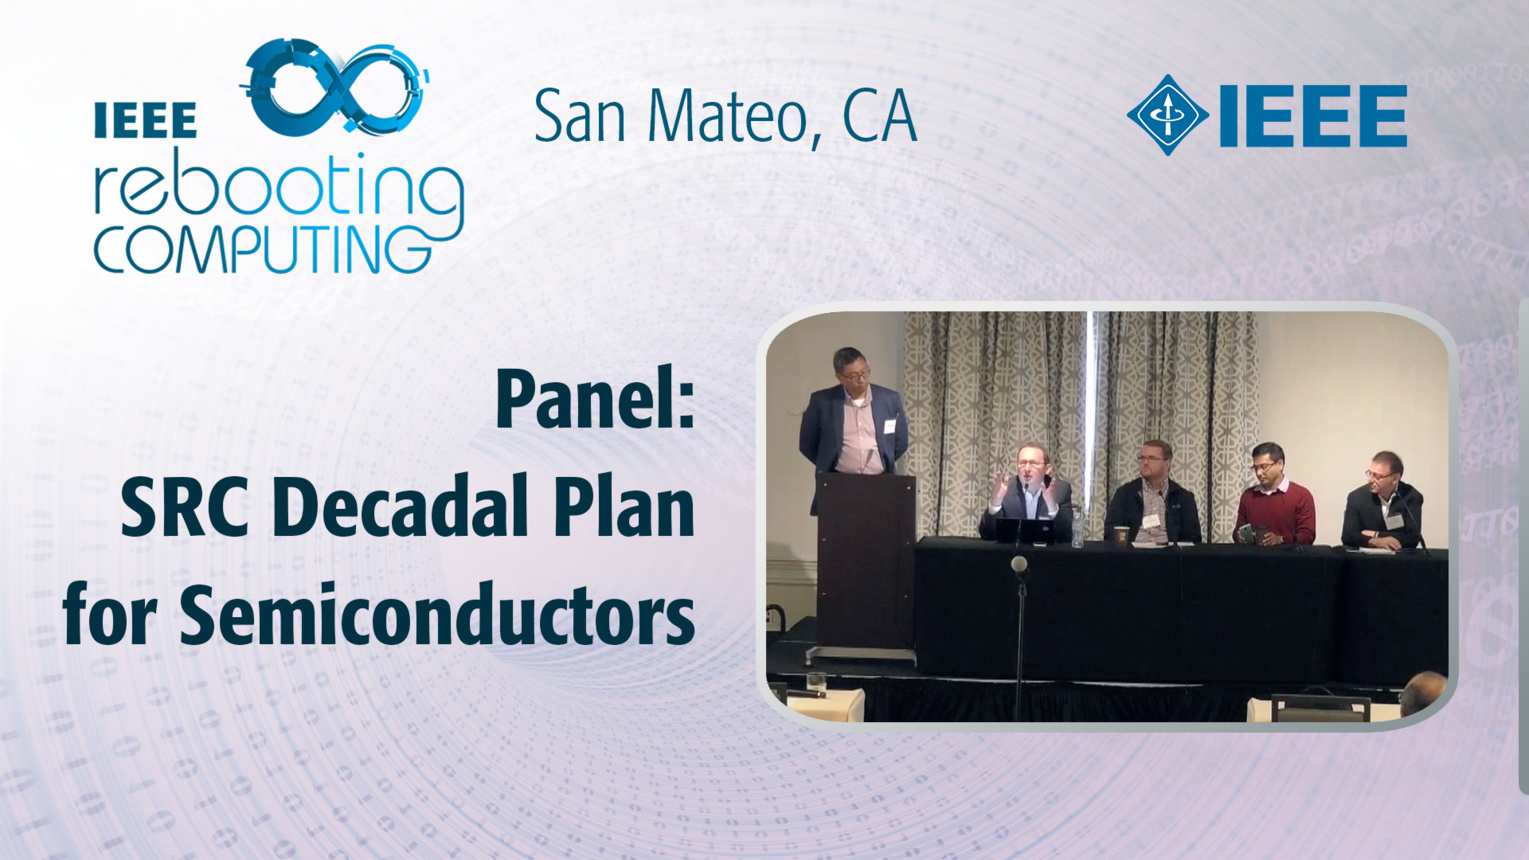 Panel: SRC Decadal Plan for Semiconductors - ICRC San Mateo, 2019